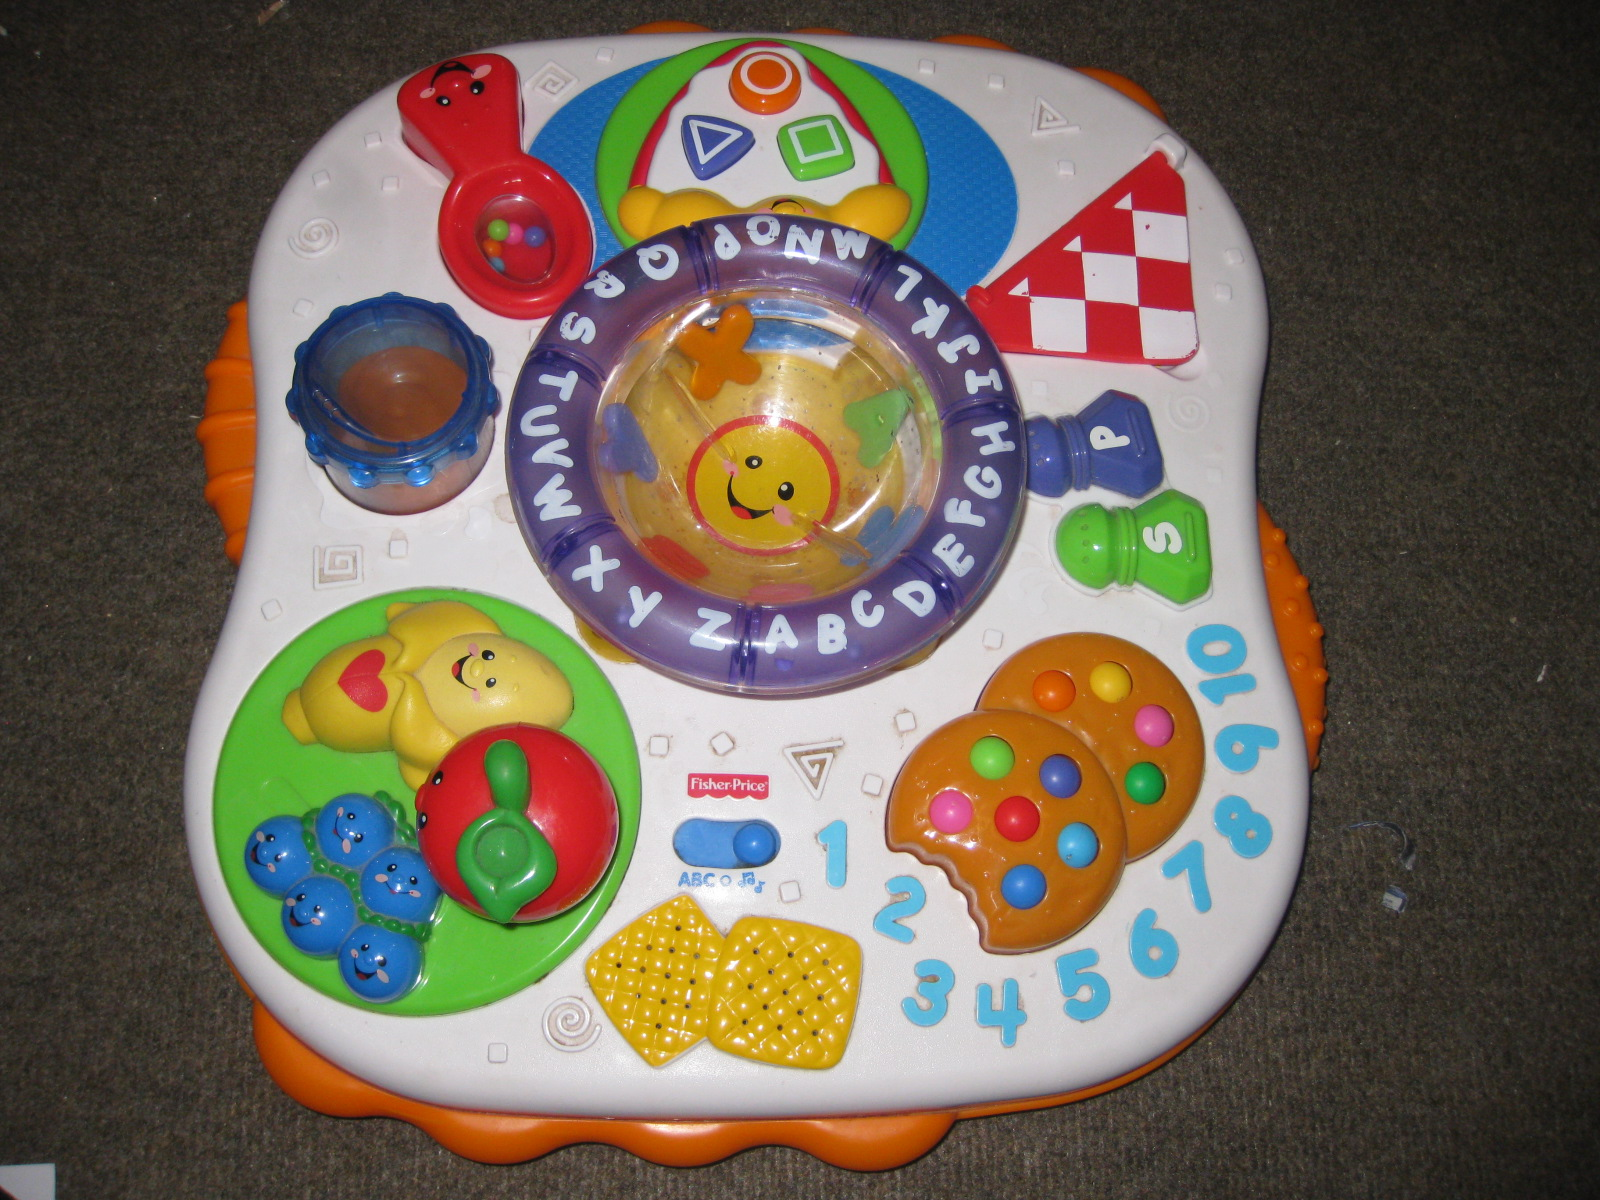 Mesya baby wardrobe fisher price laugh learn activity table - Table activite fisher price ...